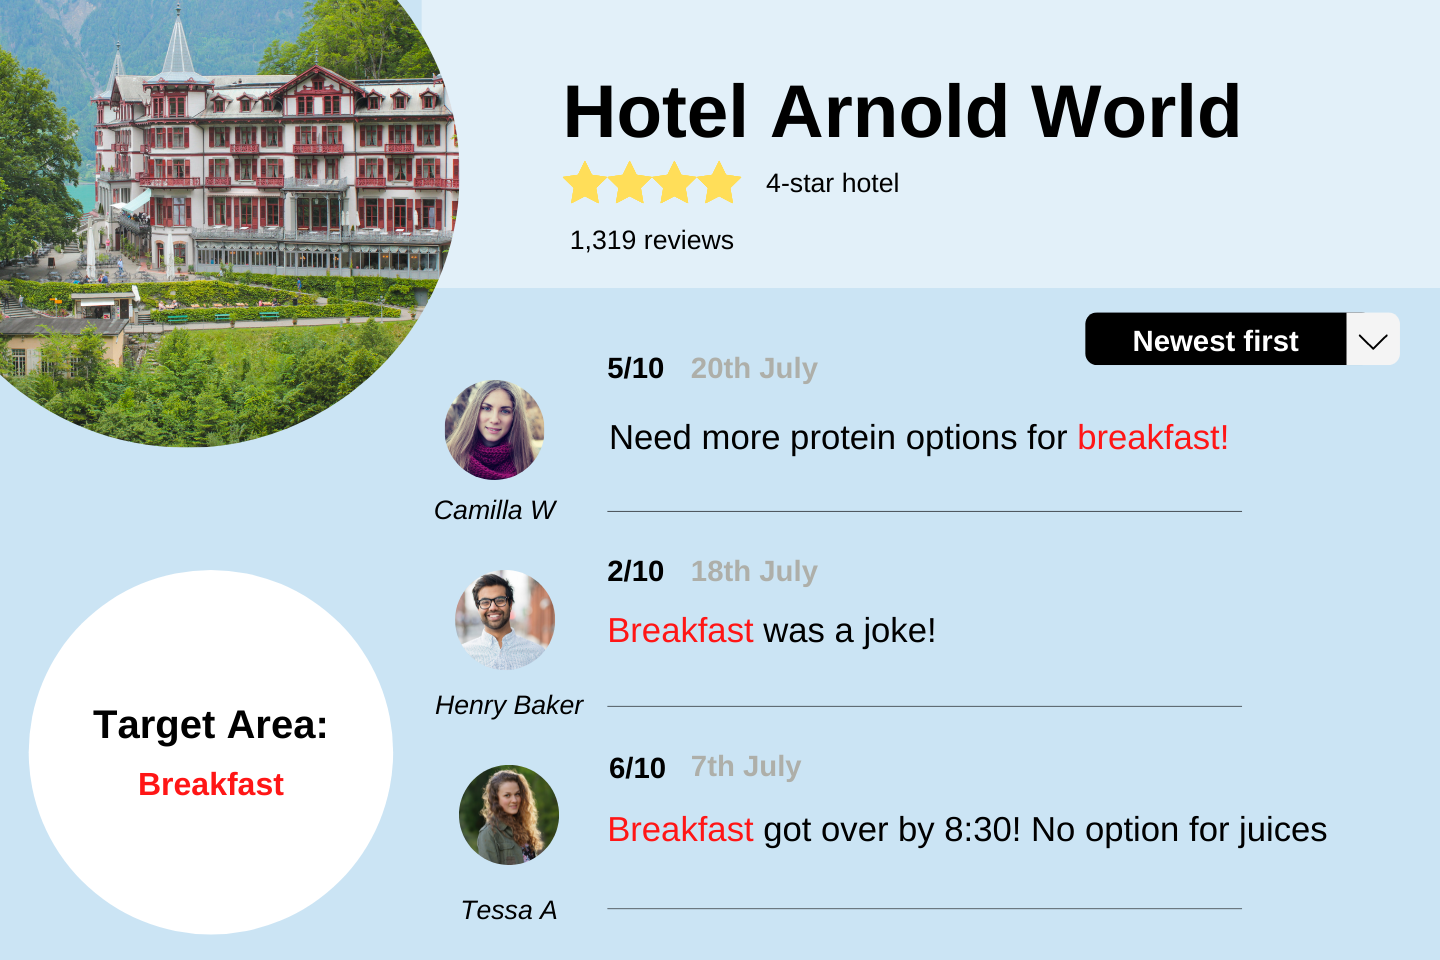 negative hotel online reviews to address issues